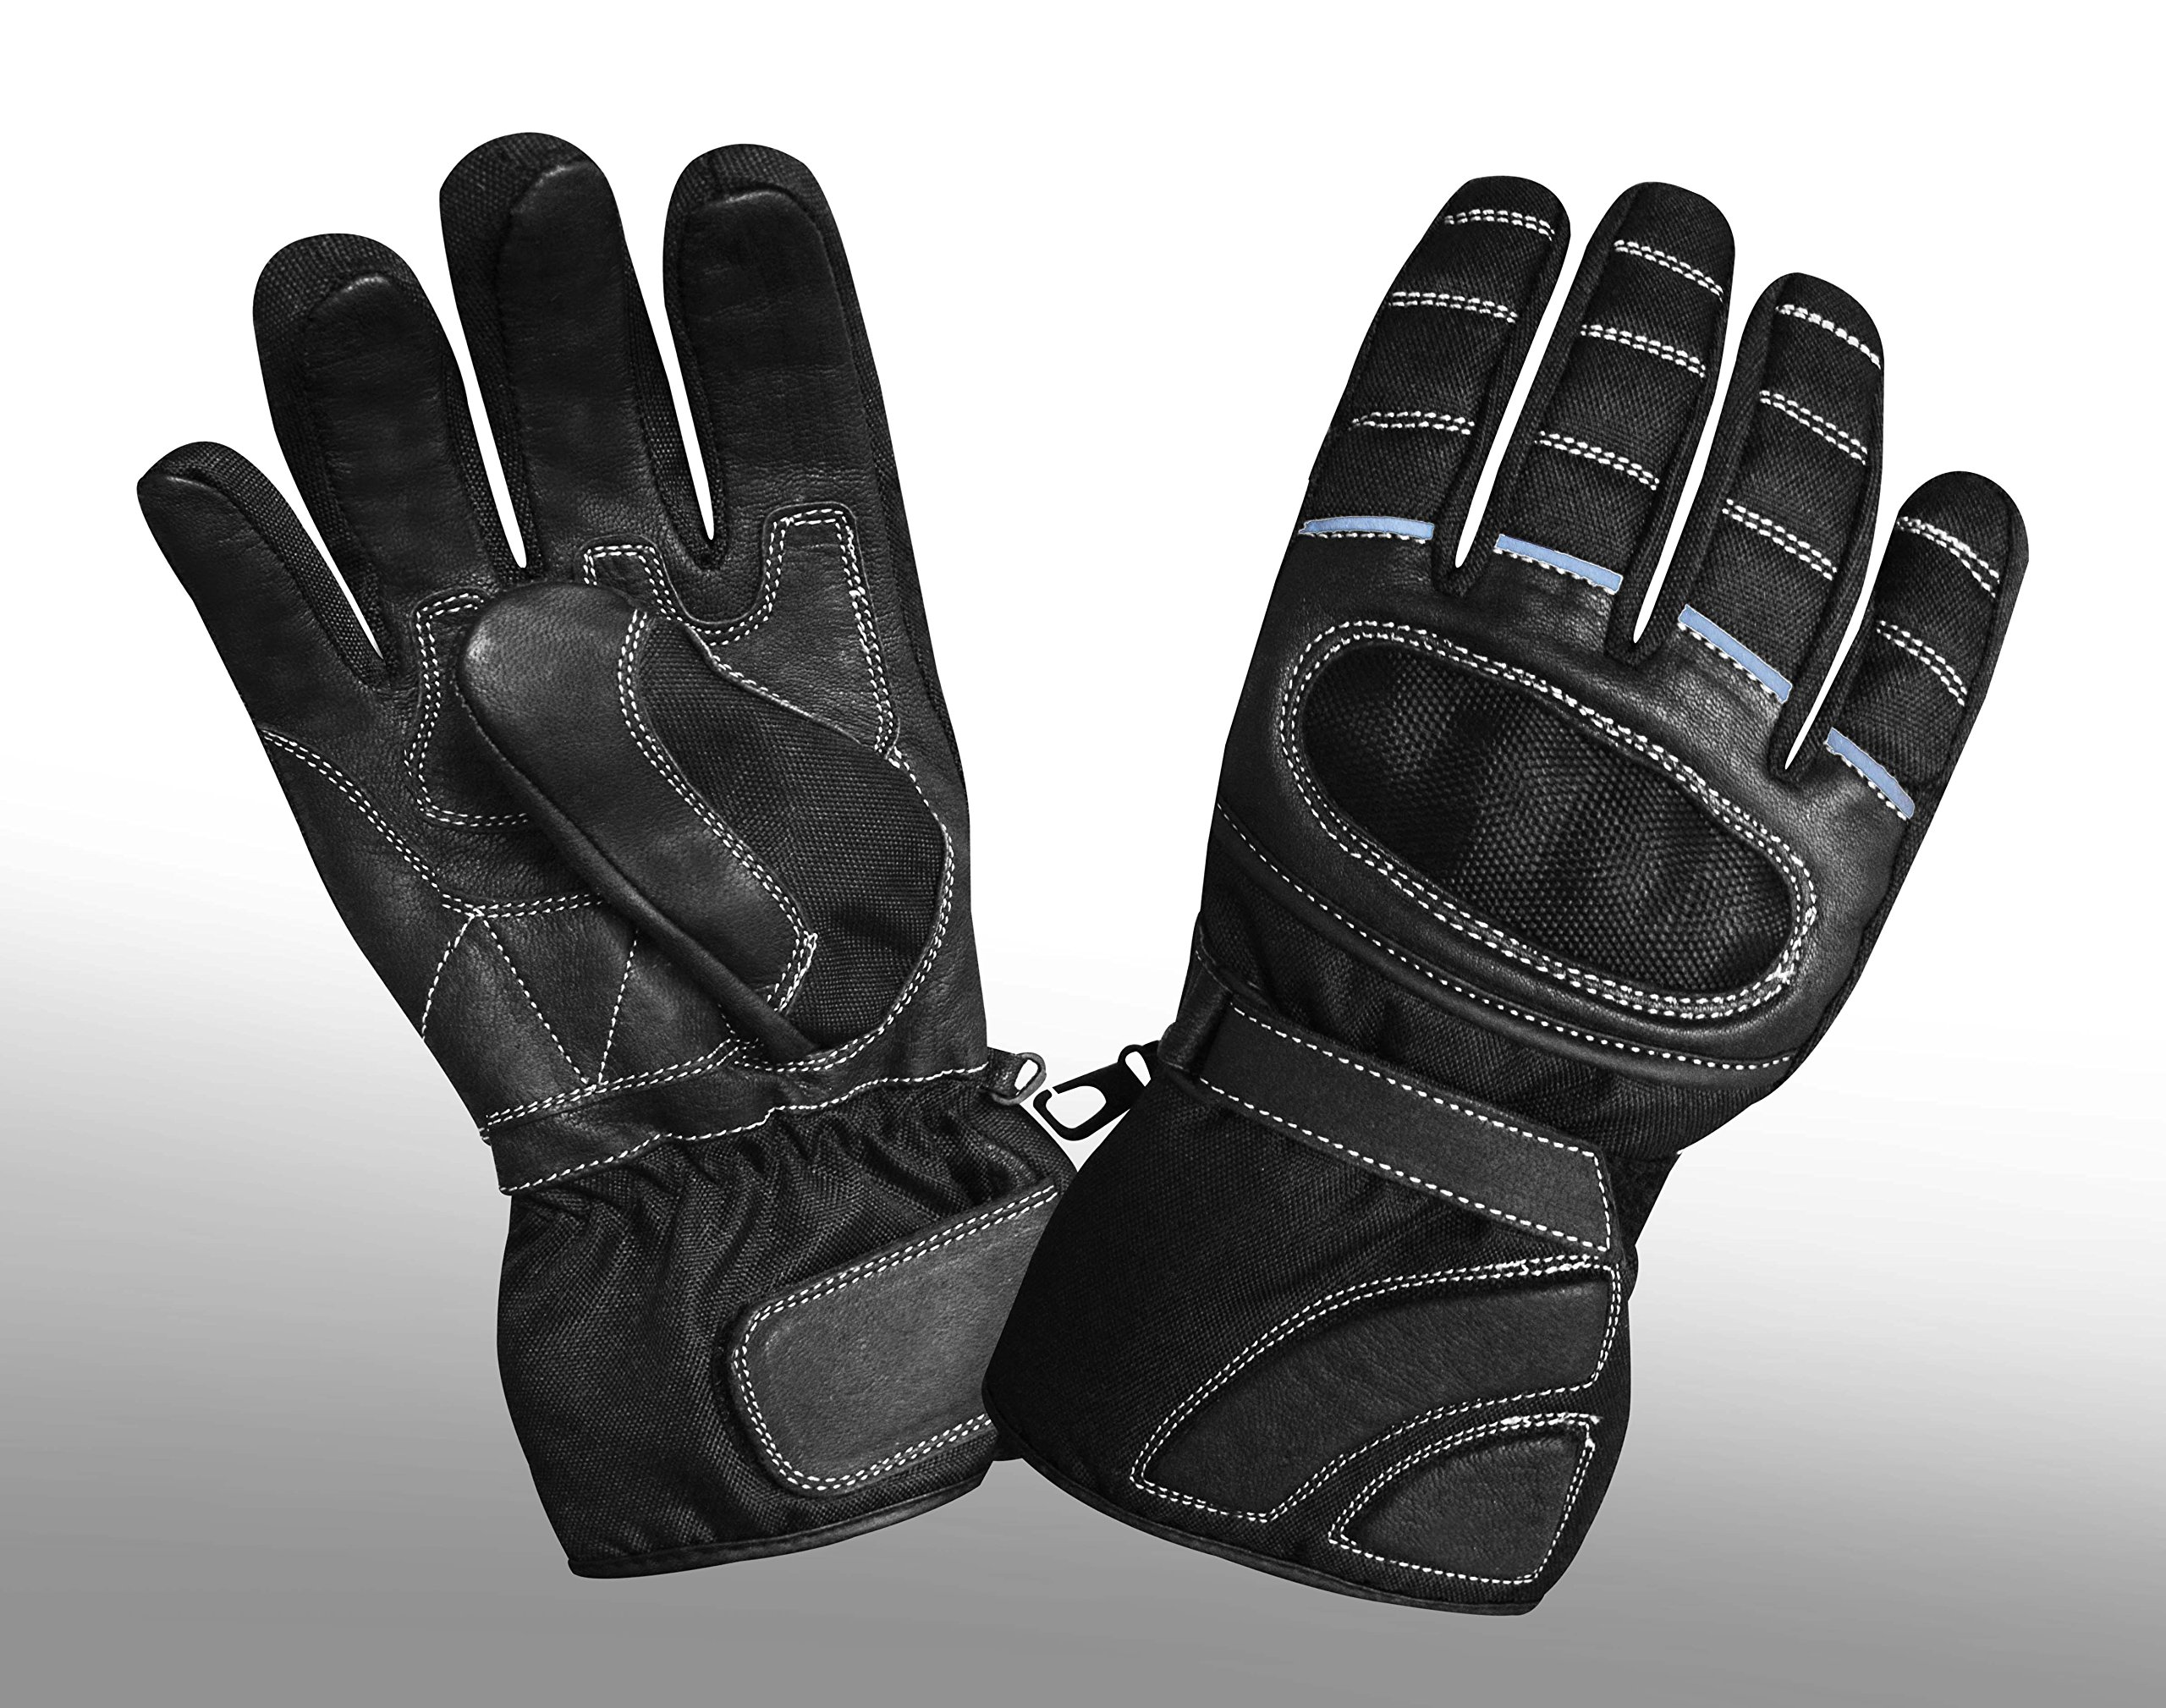 Prime Sports Men's Real Leather & Cordura Motorcycle Winter Thinsulate Carbon Fiber Waterproof Gloves (Black, X-Large)